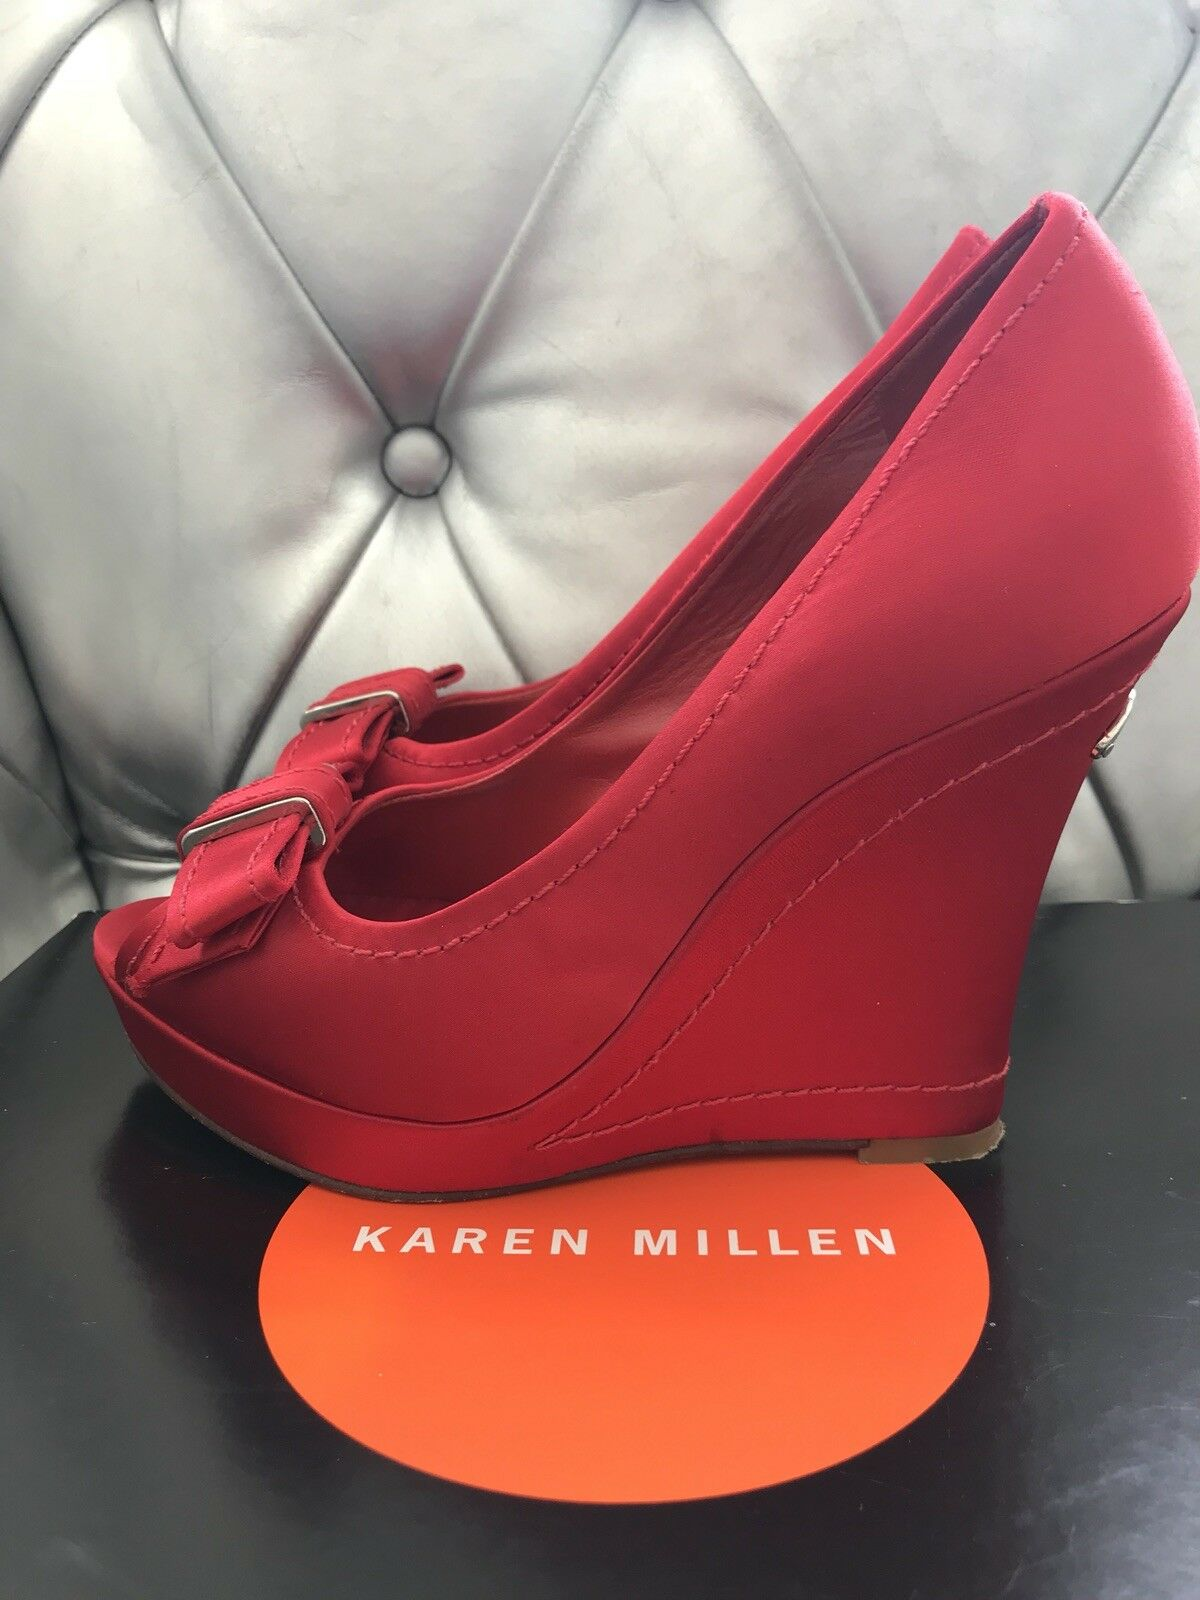 Karen Millen ROT Satin Bow Front Wedges Größe 38 UK 5